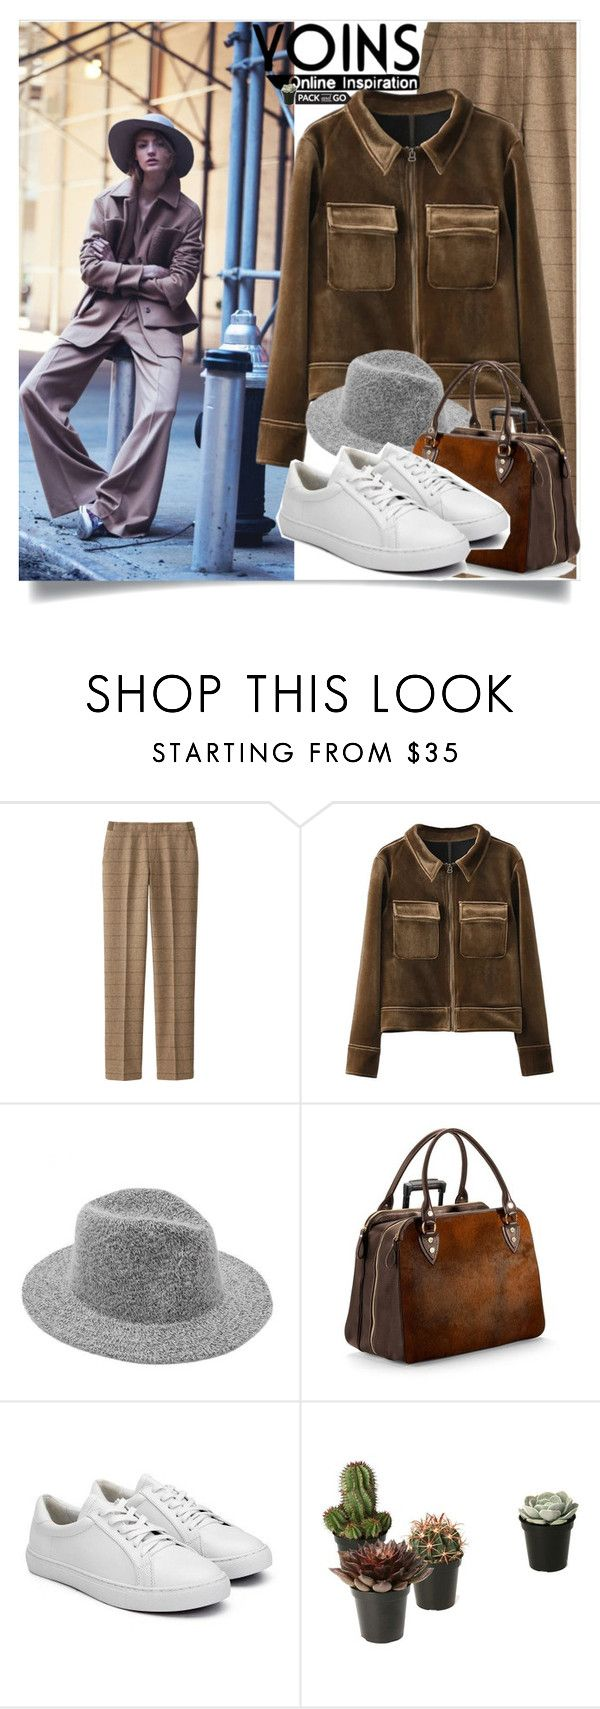 """""""Yoins:The nineties"""" by yoinscollection ❤ liked on Polyvore featuring Uniqlo and Aspinal of London"""